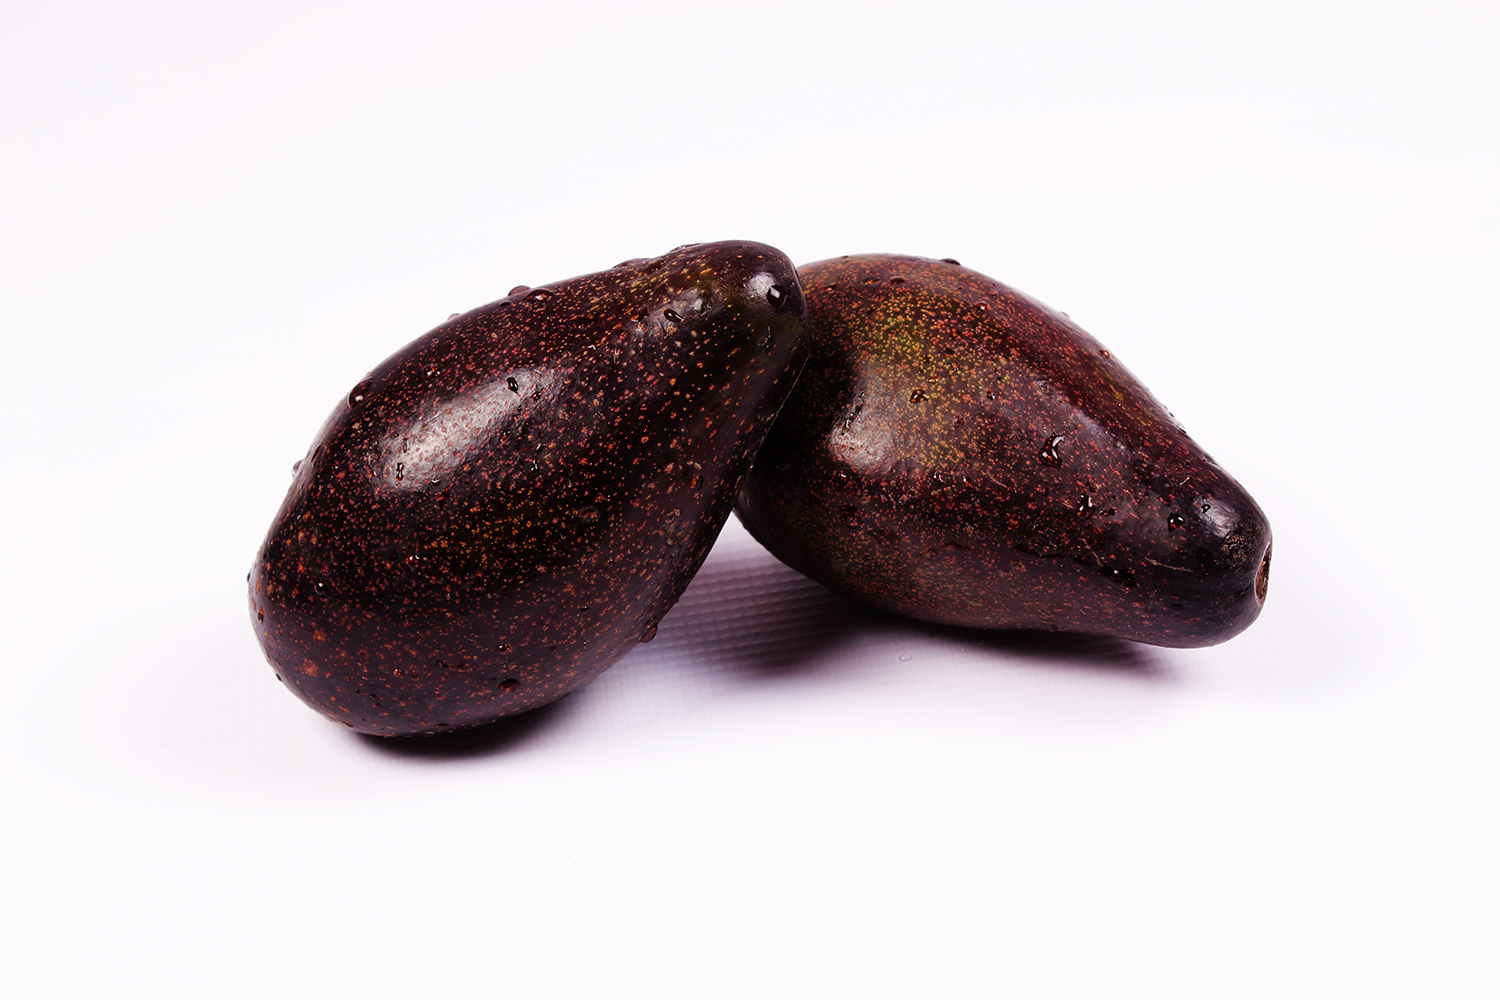 Two black avocados on isolated white background